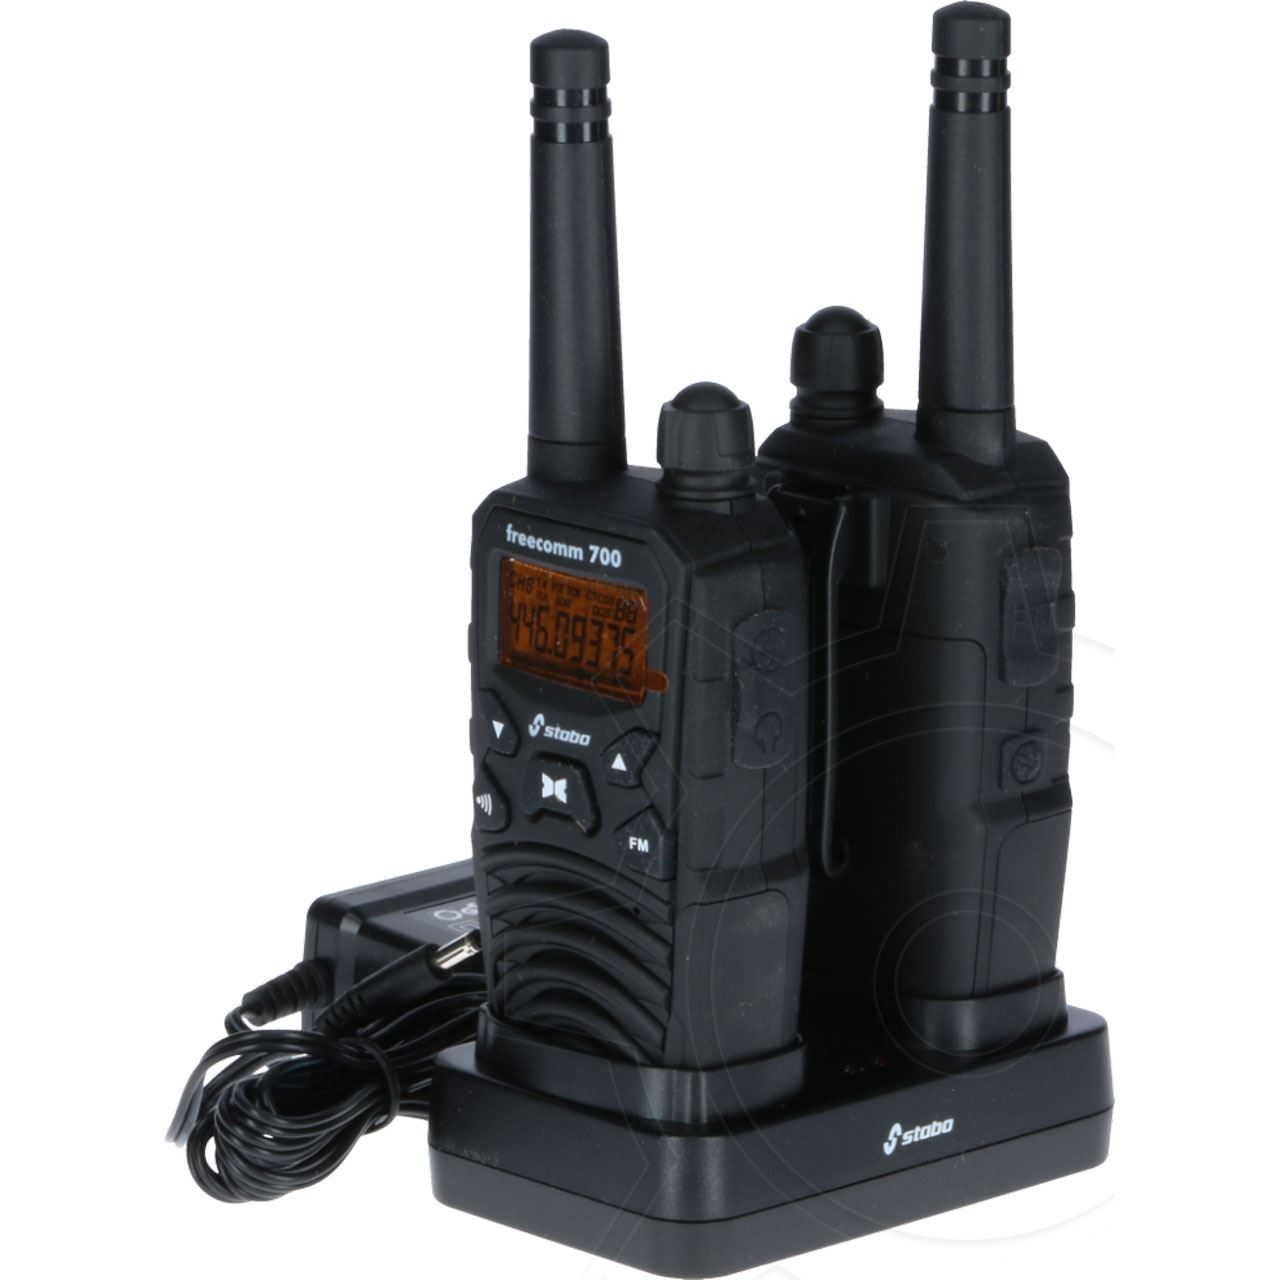 stabo freecom 700 set pmr funkger t walkie talkies. Black Bedroom Furniture Sets. Home Design Ideas